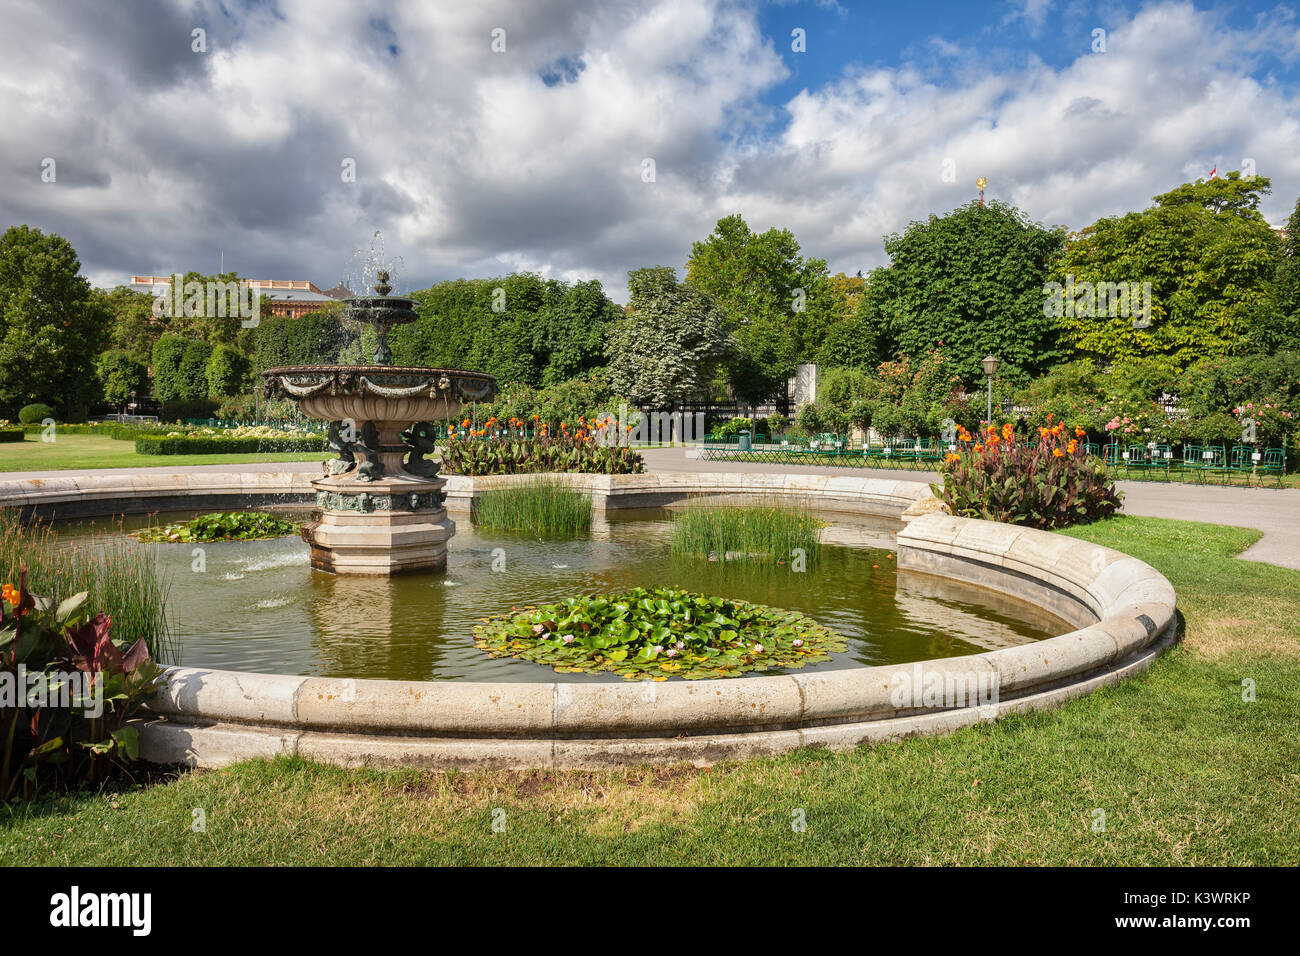 Volksgarten hofburg vienna austria stock photos for Garden centre pool in wharfedale